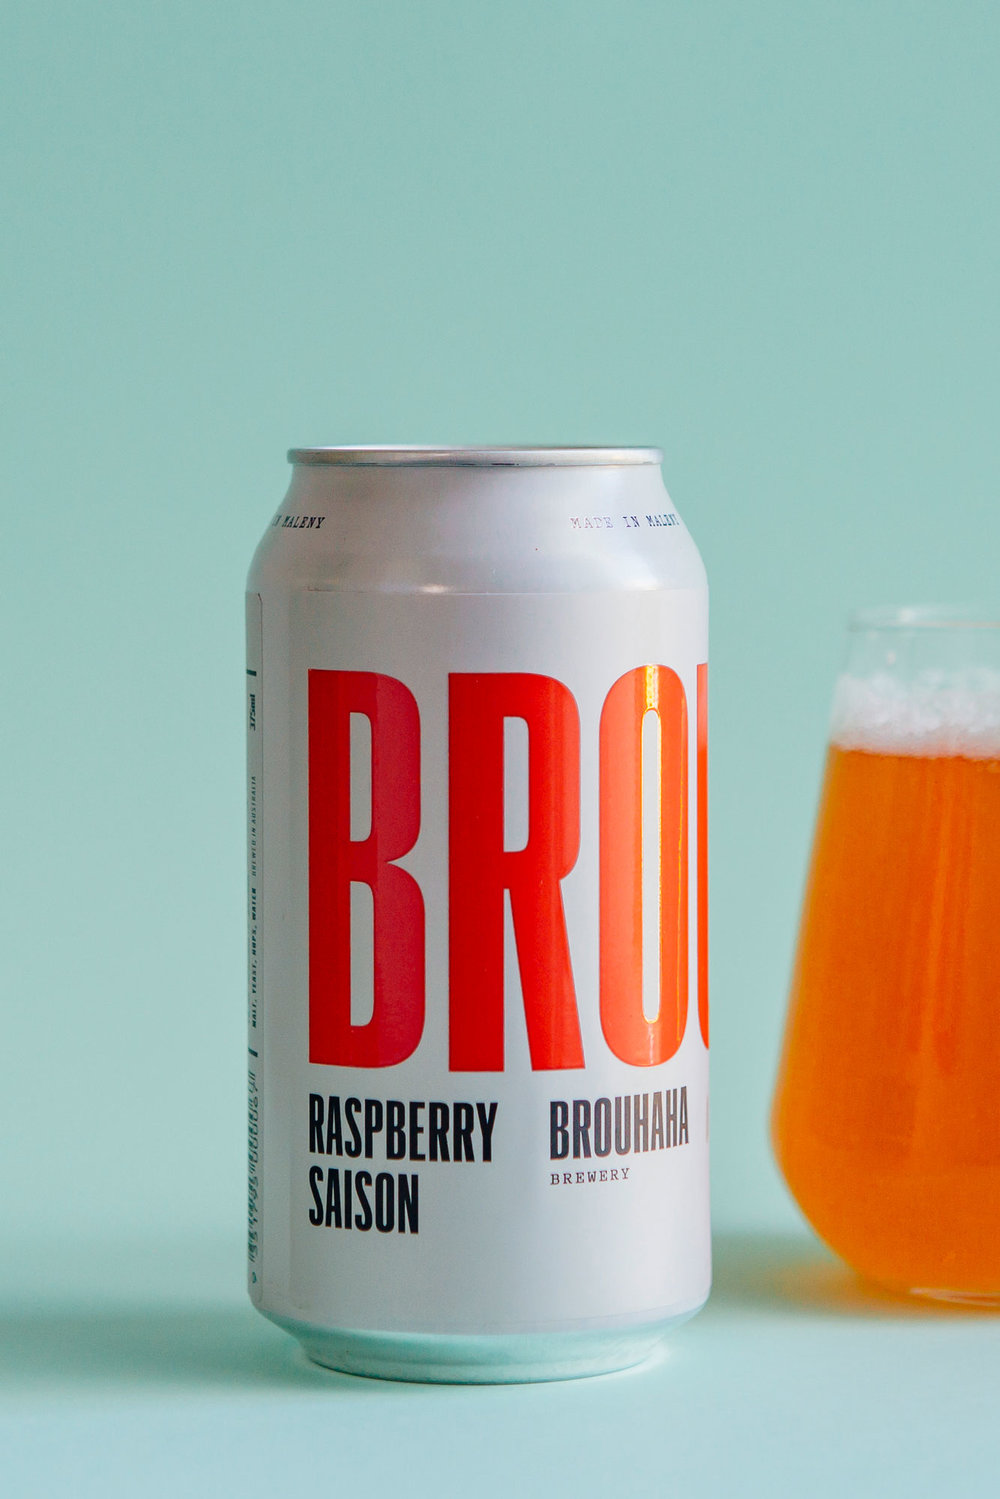 Brouhaha-Brewery-Craft-Beer-Raspberry-Saison.jpg